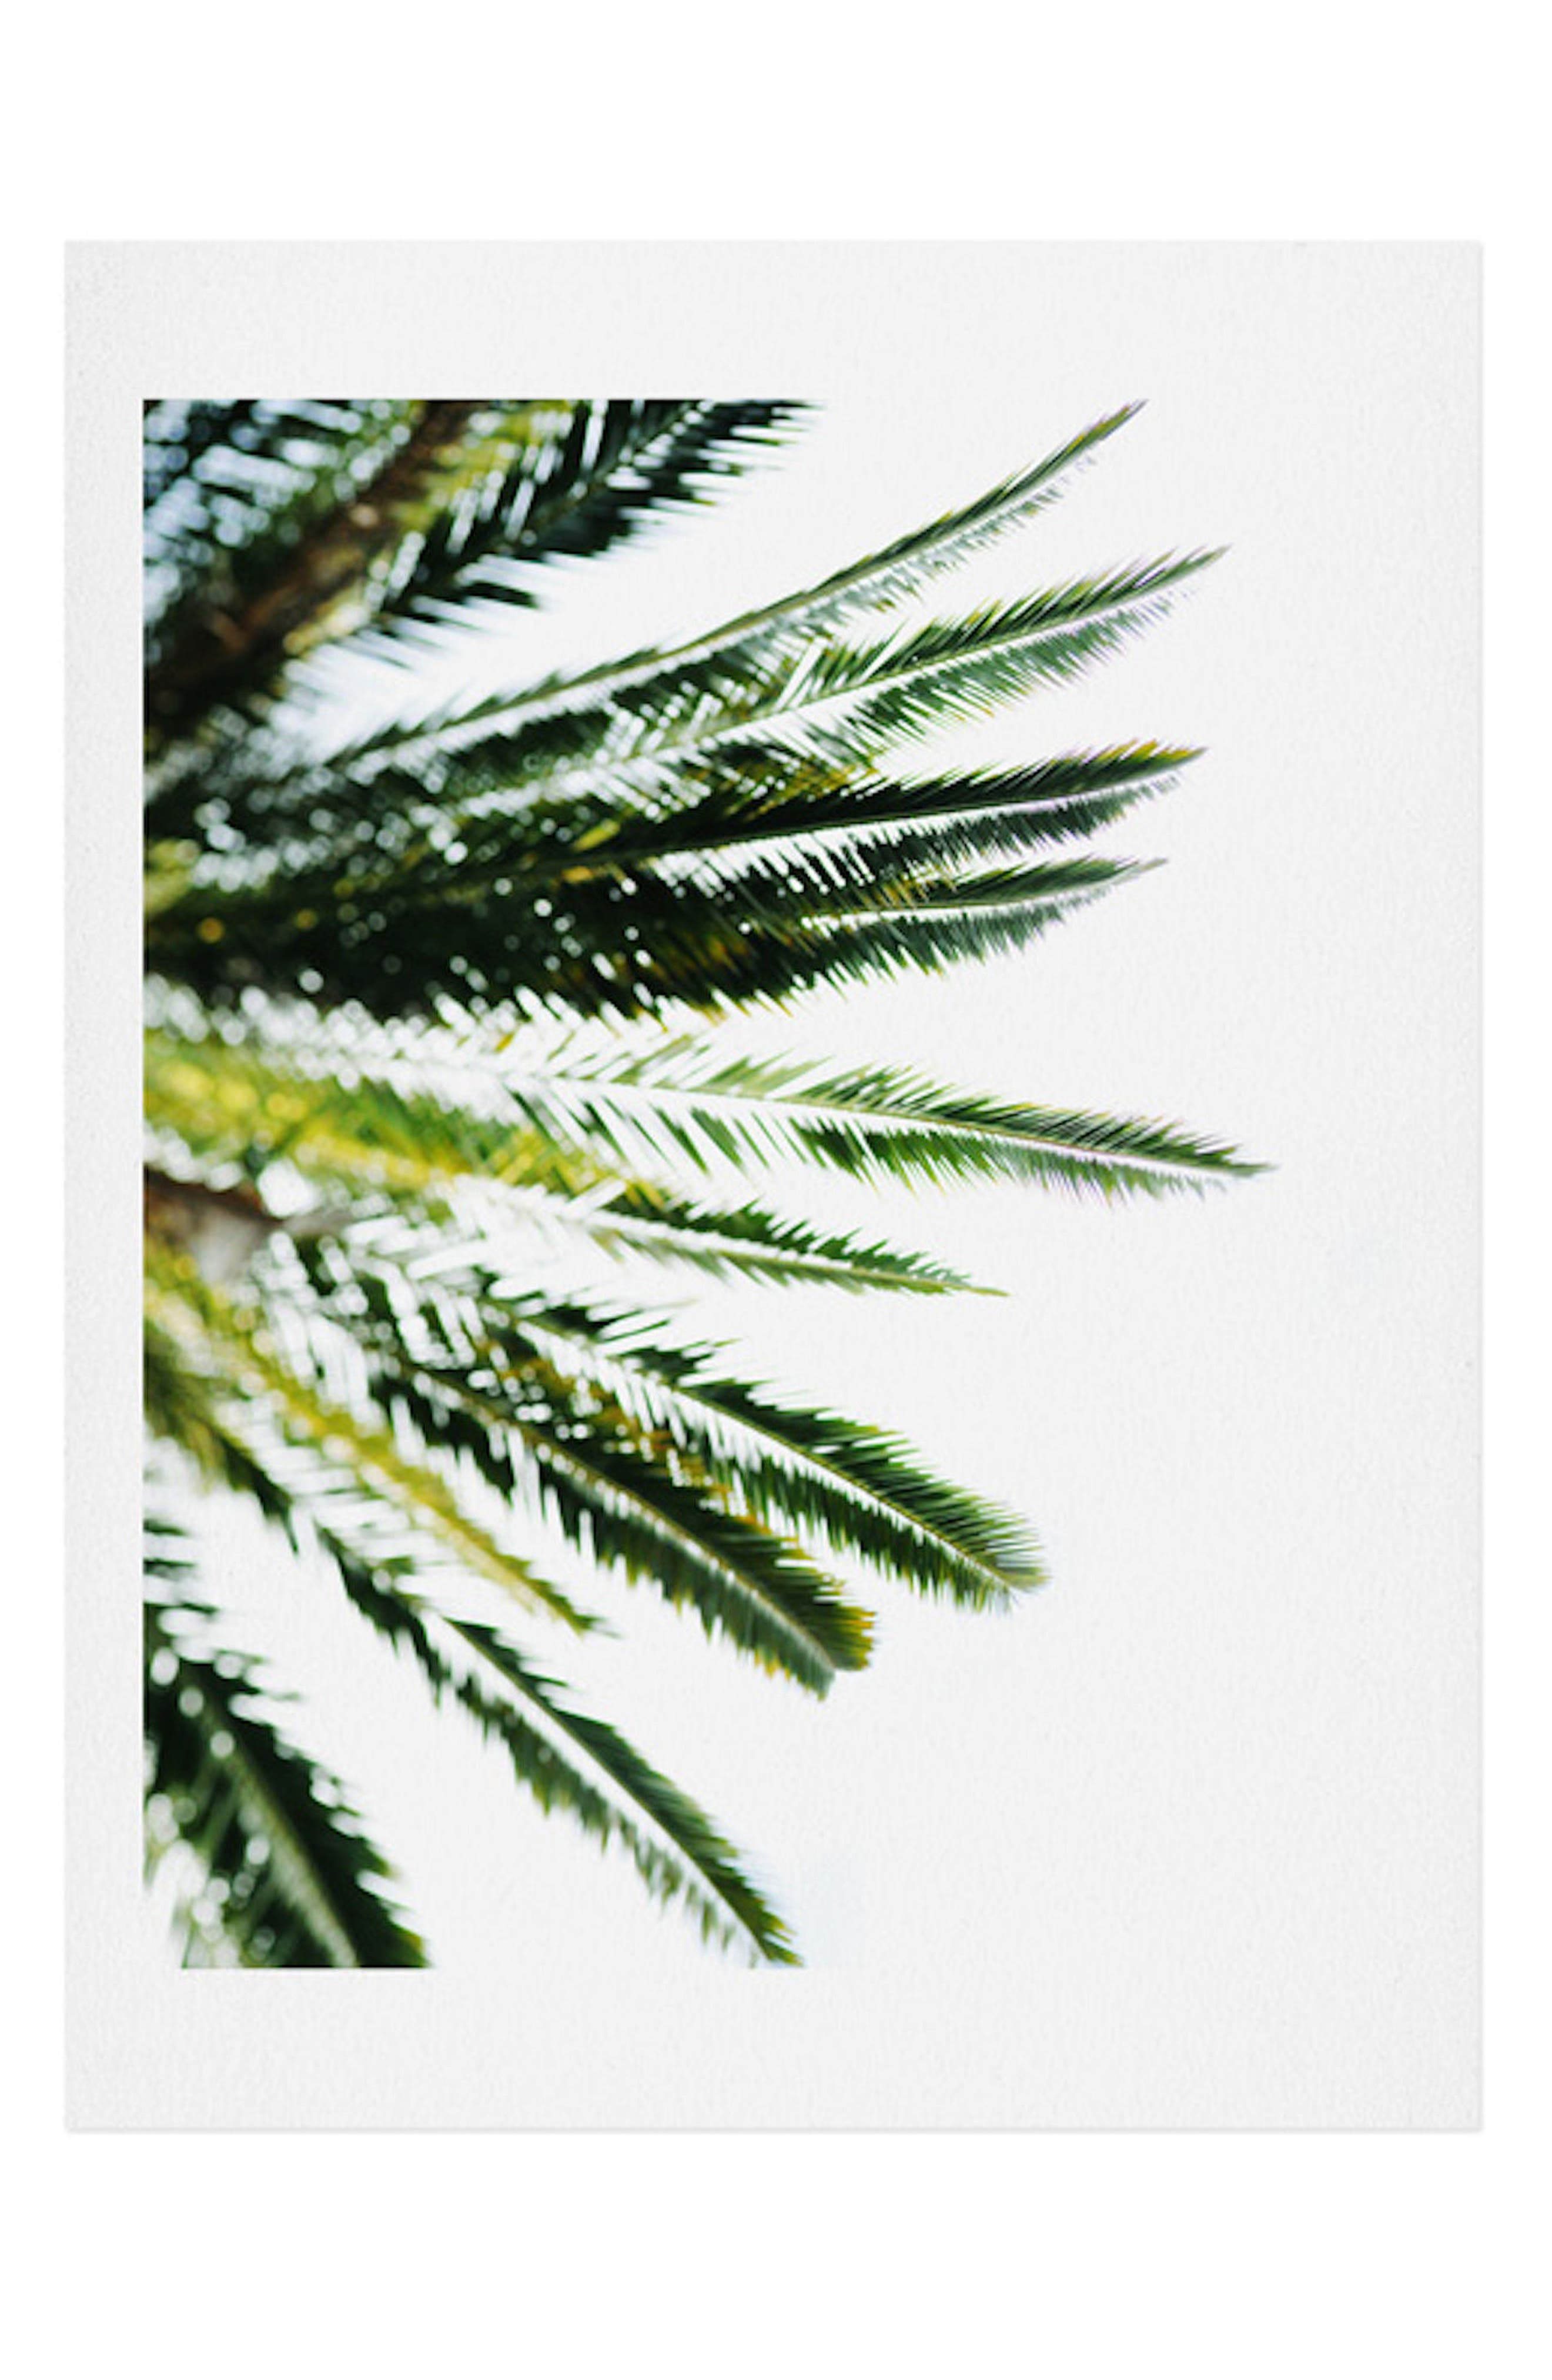 DENY DESIGNS Chelsea Victoria - Beverly Hills Palm Art Print, Main, color, GREEN